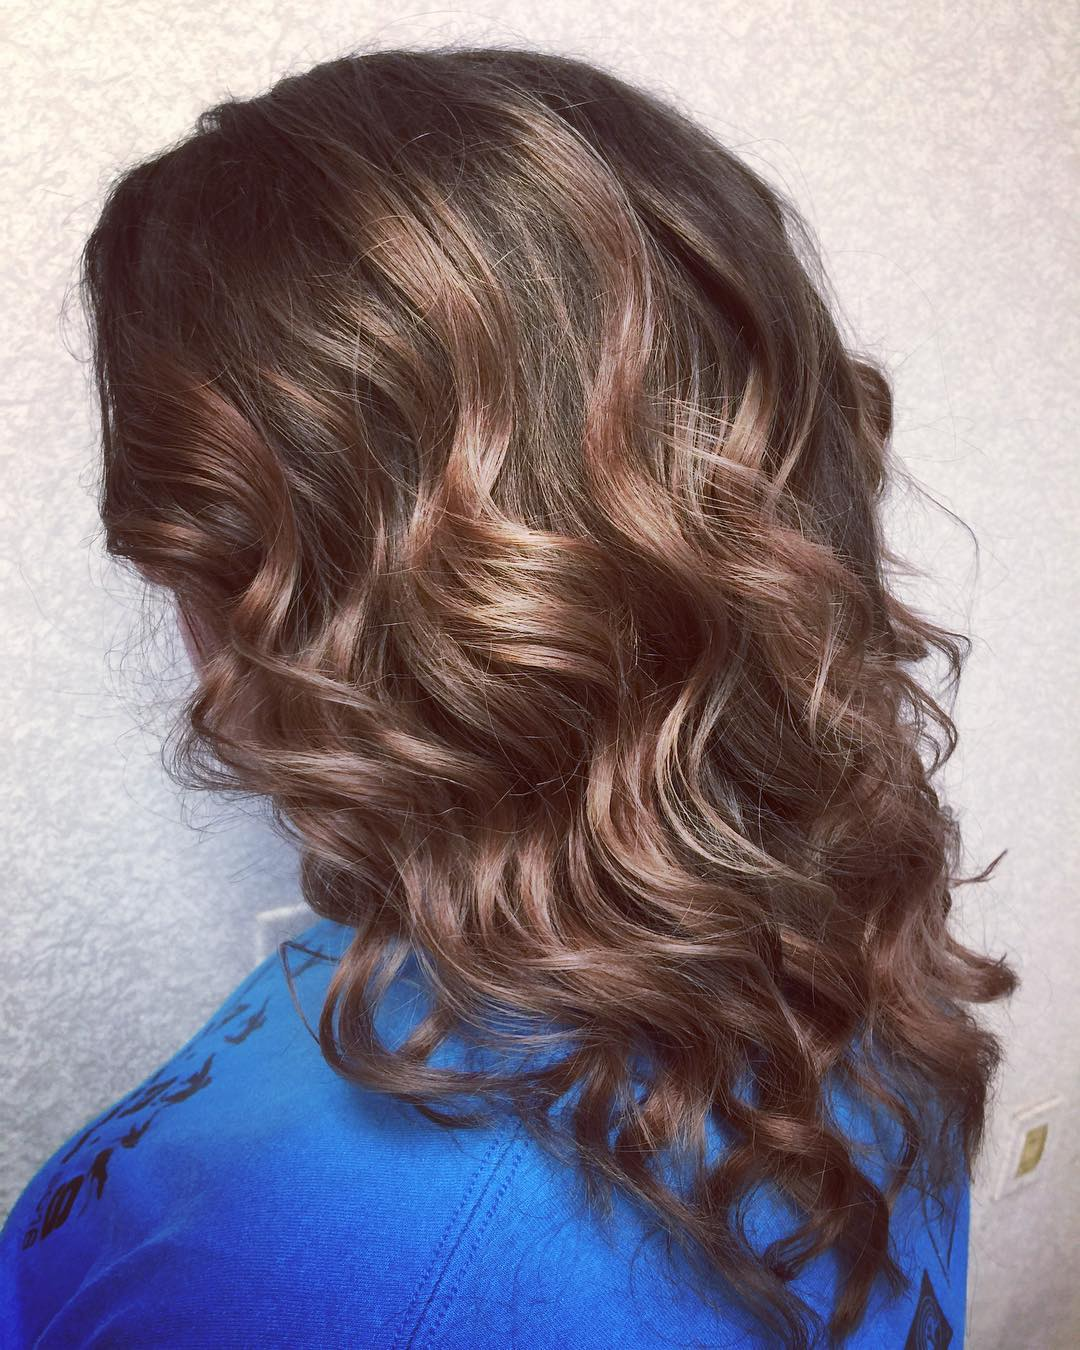 Smartstyle Hair Salon Neenah Wi Hair Images Superbowlodds